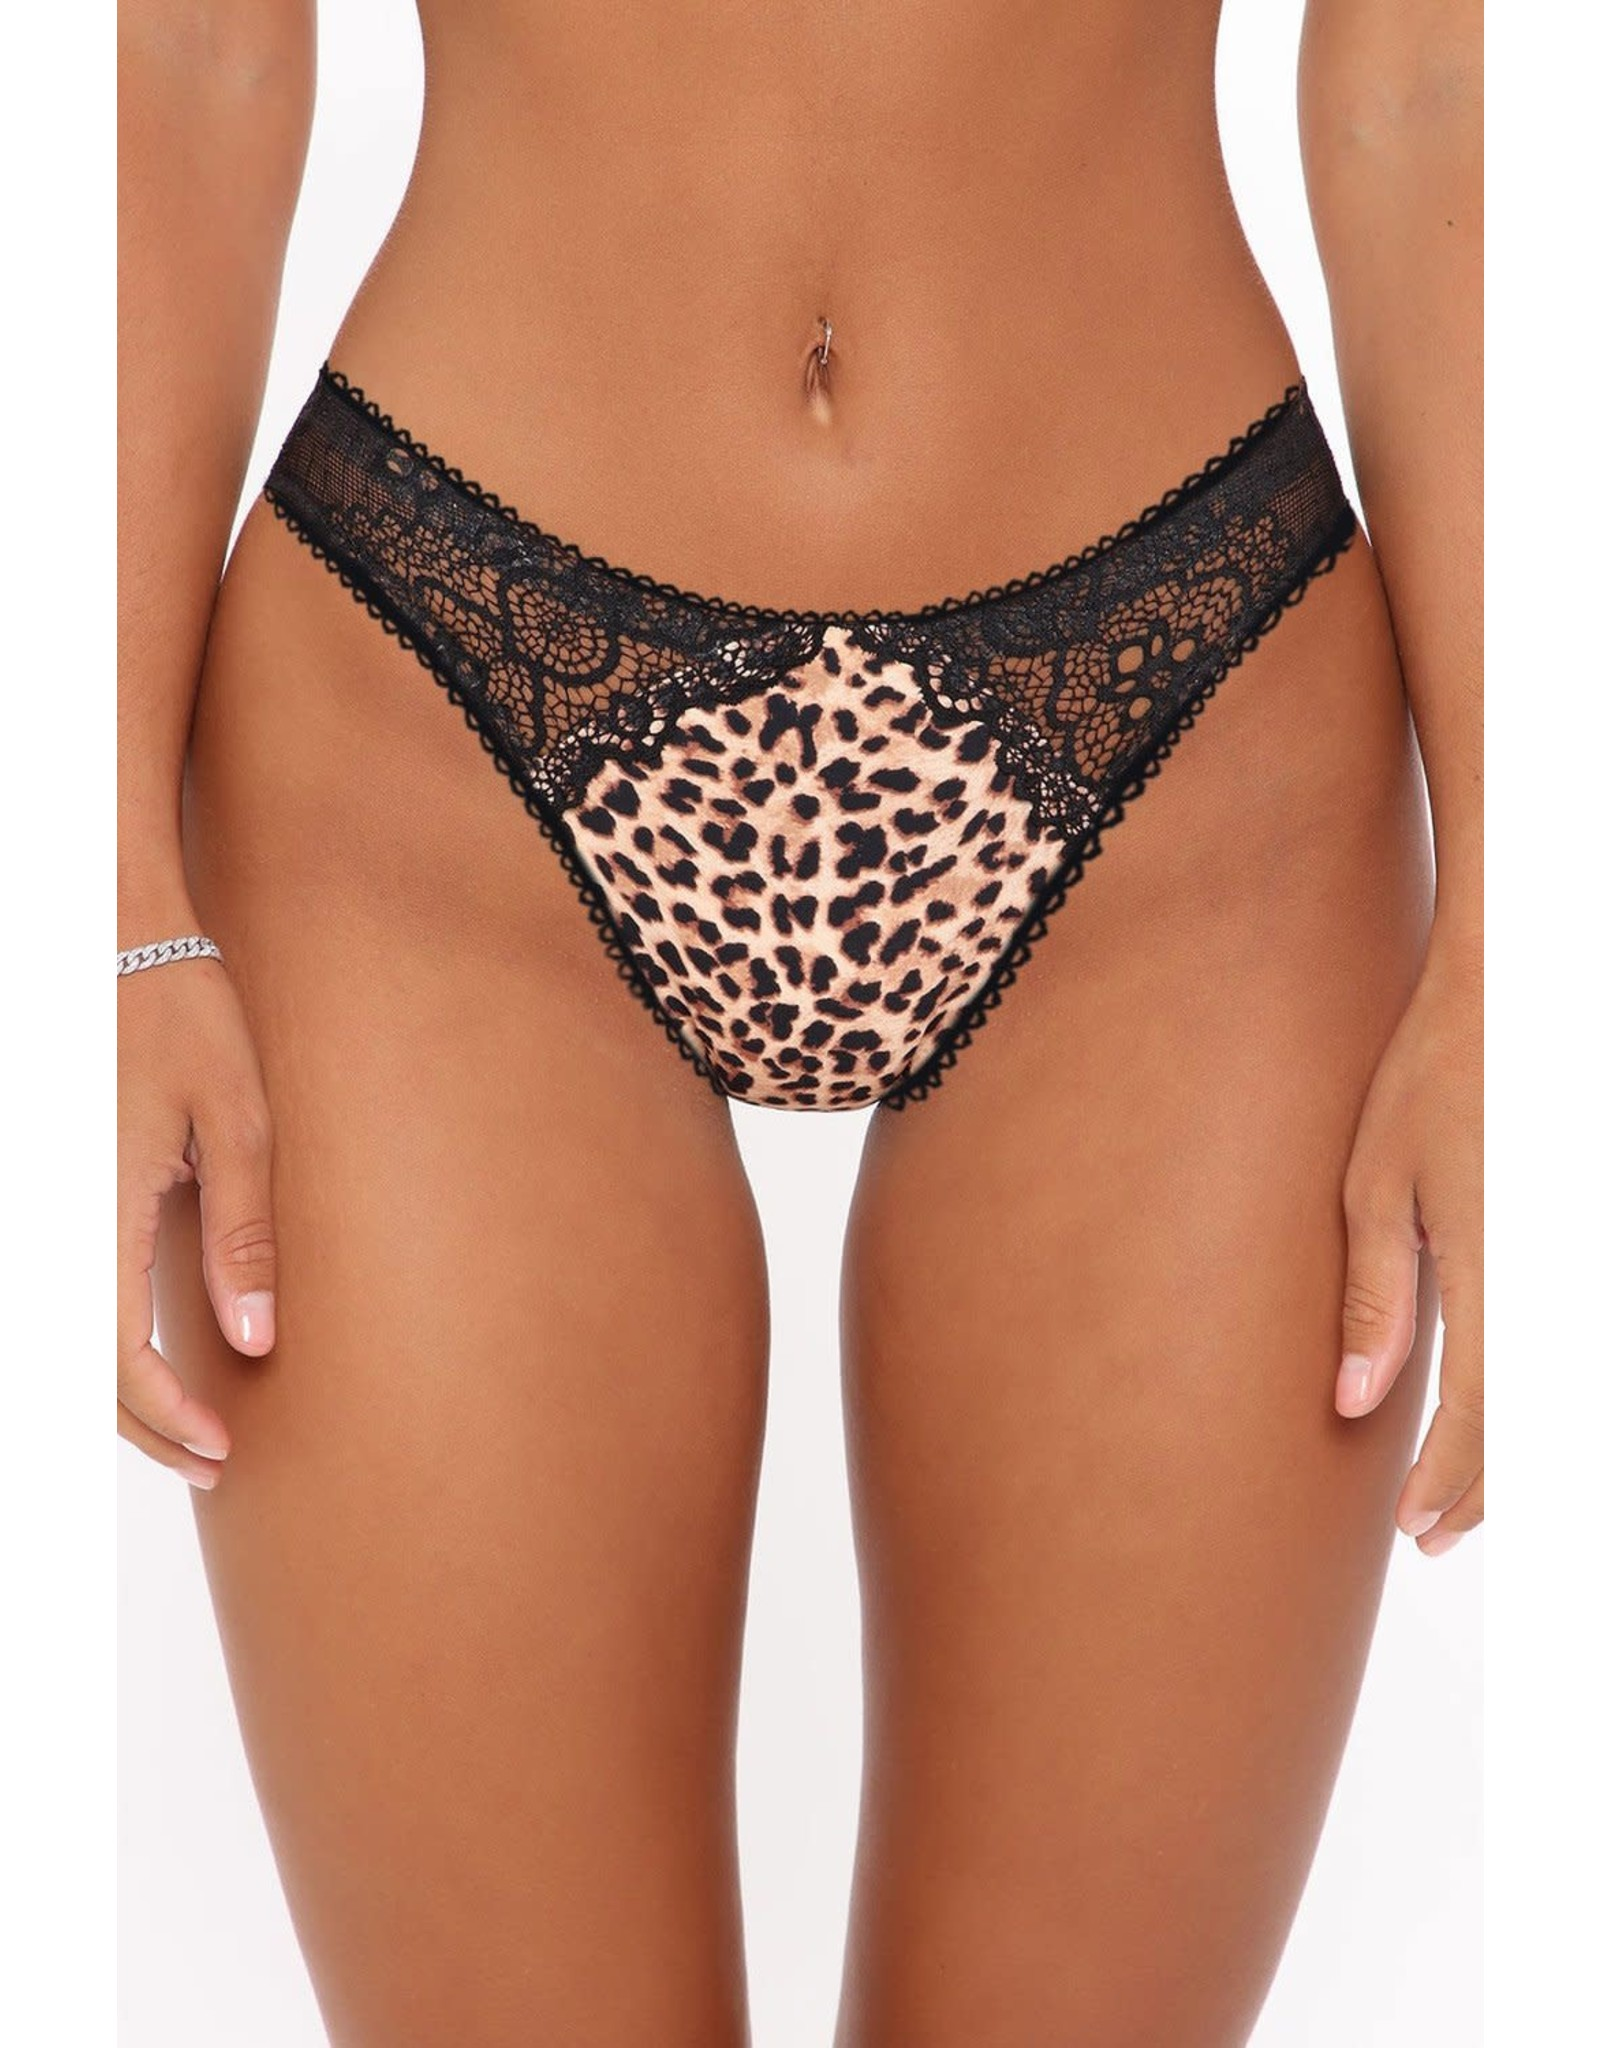 ANIMAL LEOPARD LACE PATCHWORK HOLLOW OUT WILD PANTY - (US 12-14)L